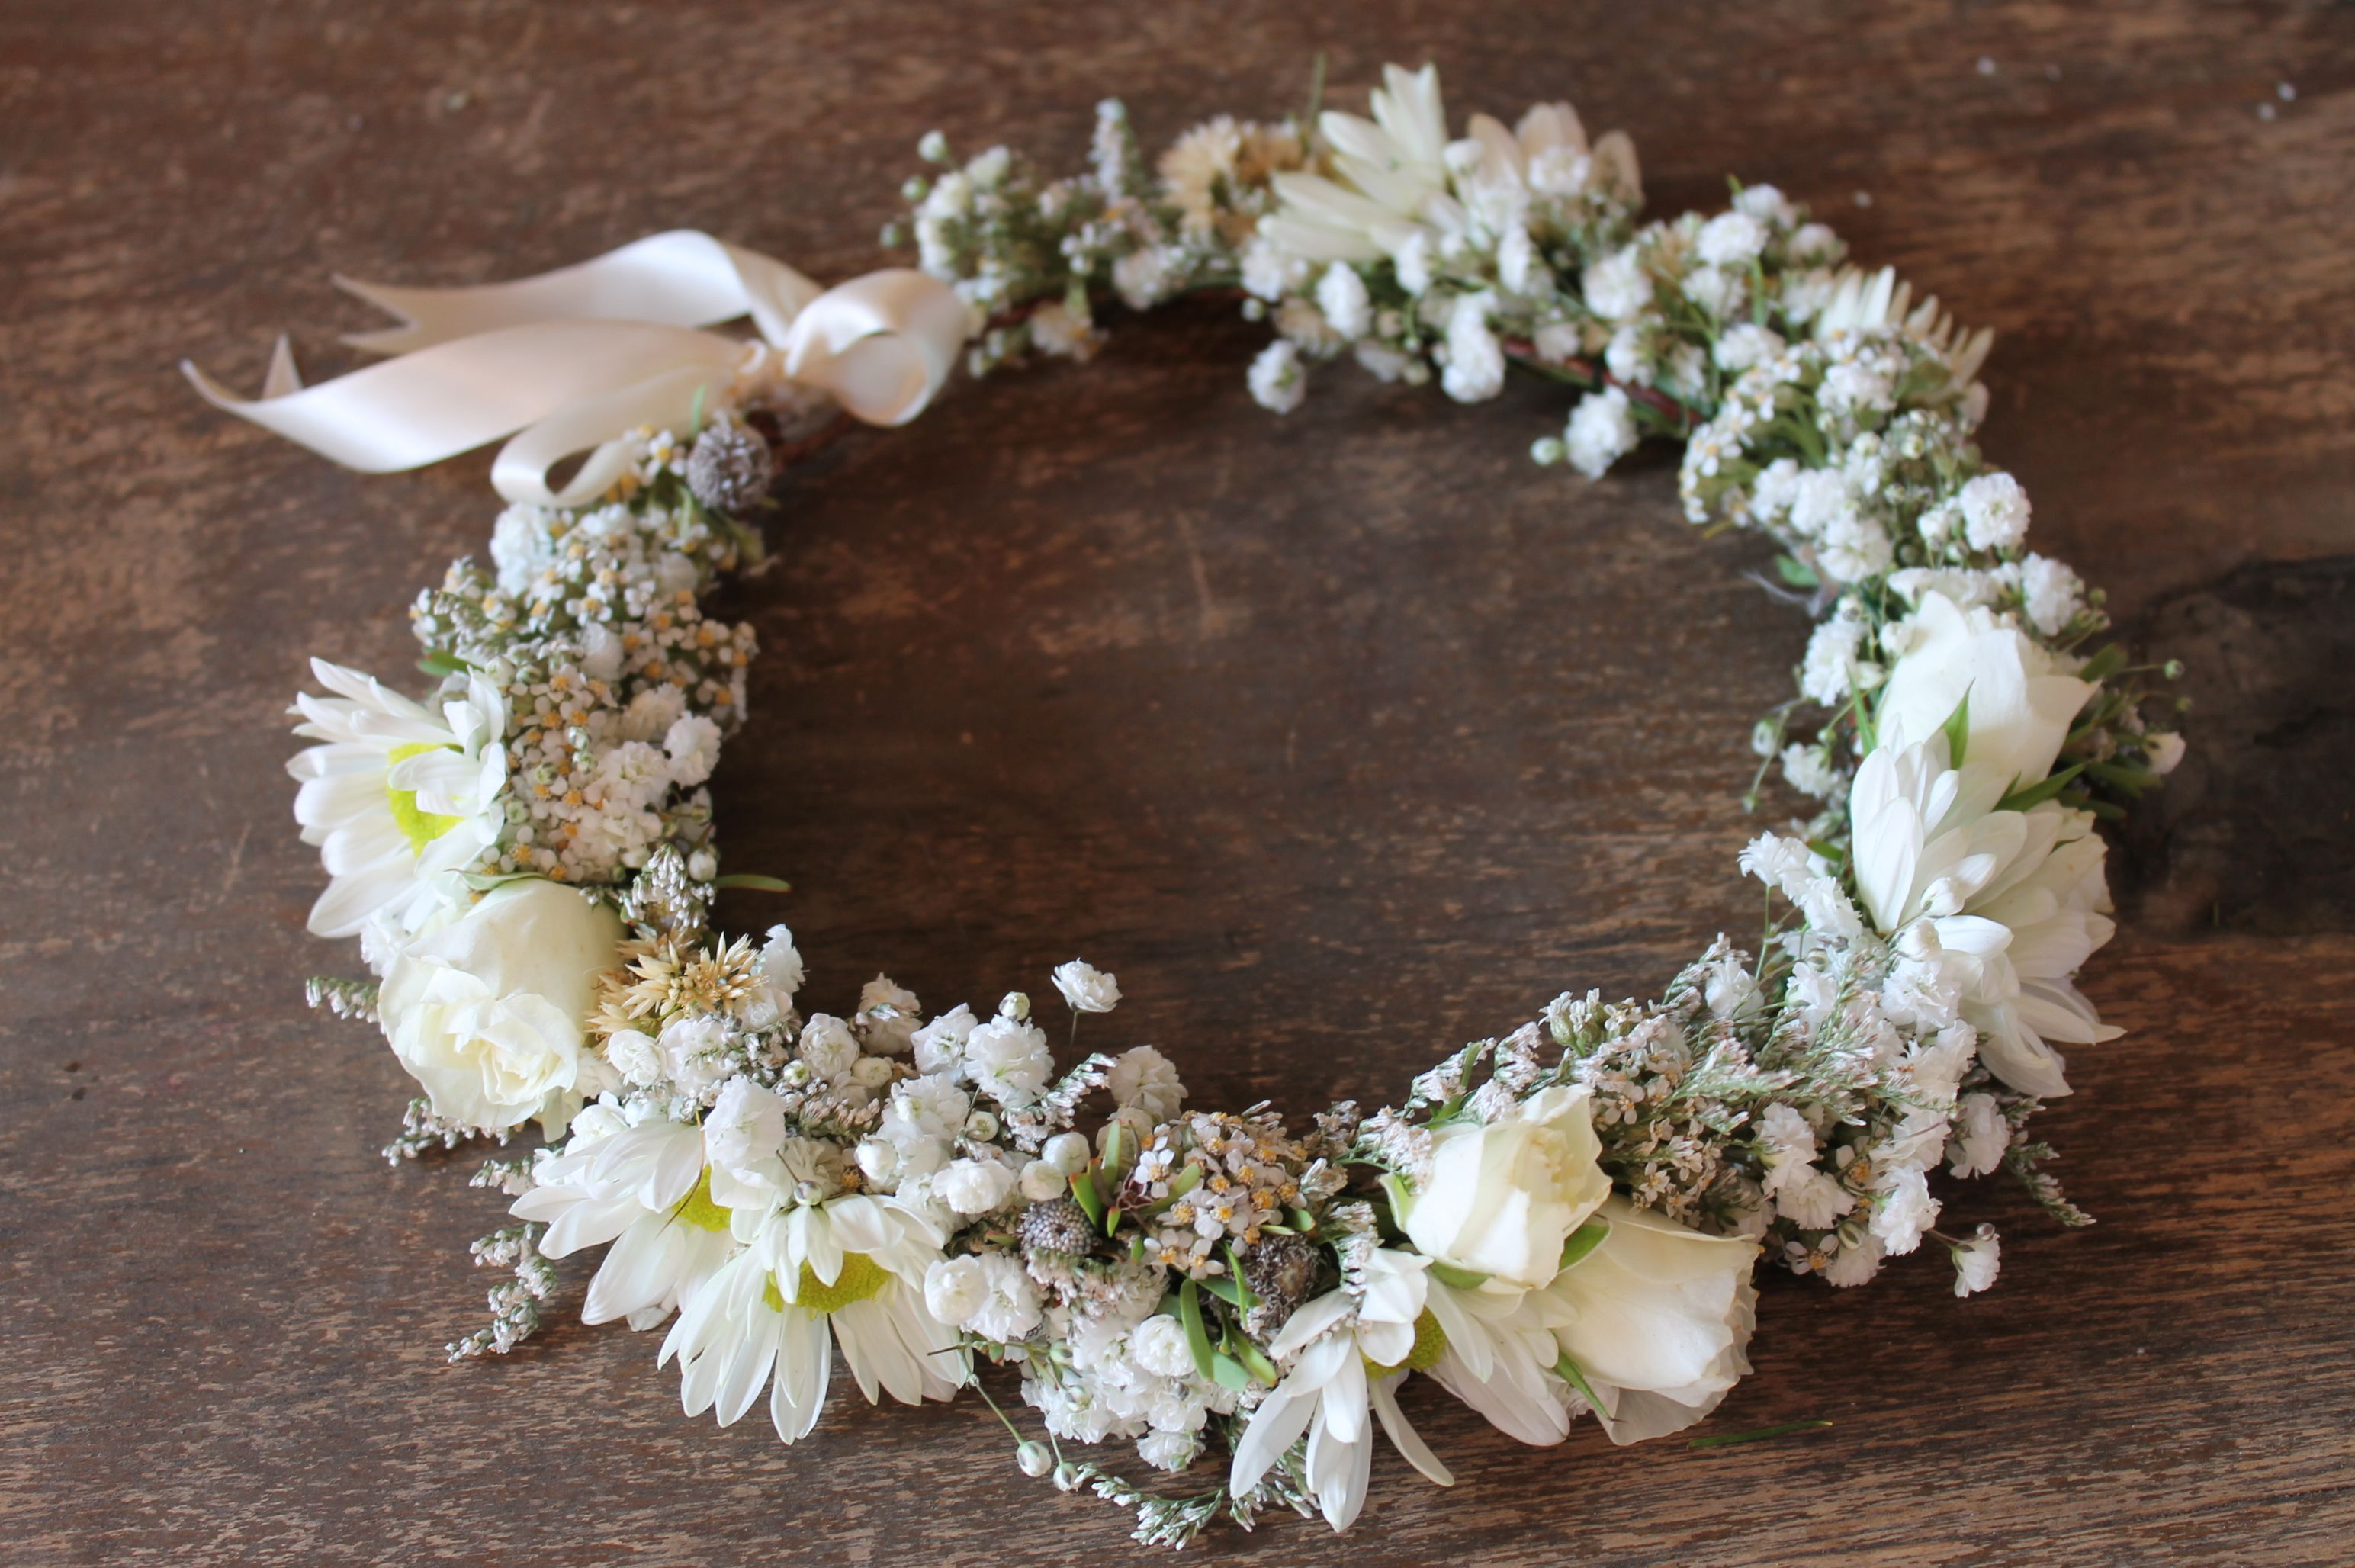 White Flower Crown Baby S Breath Daisies And White Spray Roses Www Thecrowncollective Co Daisy Flower Crown Wedding White Flower Crown Daisy Flower Crown